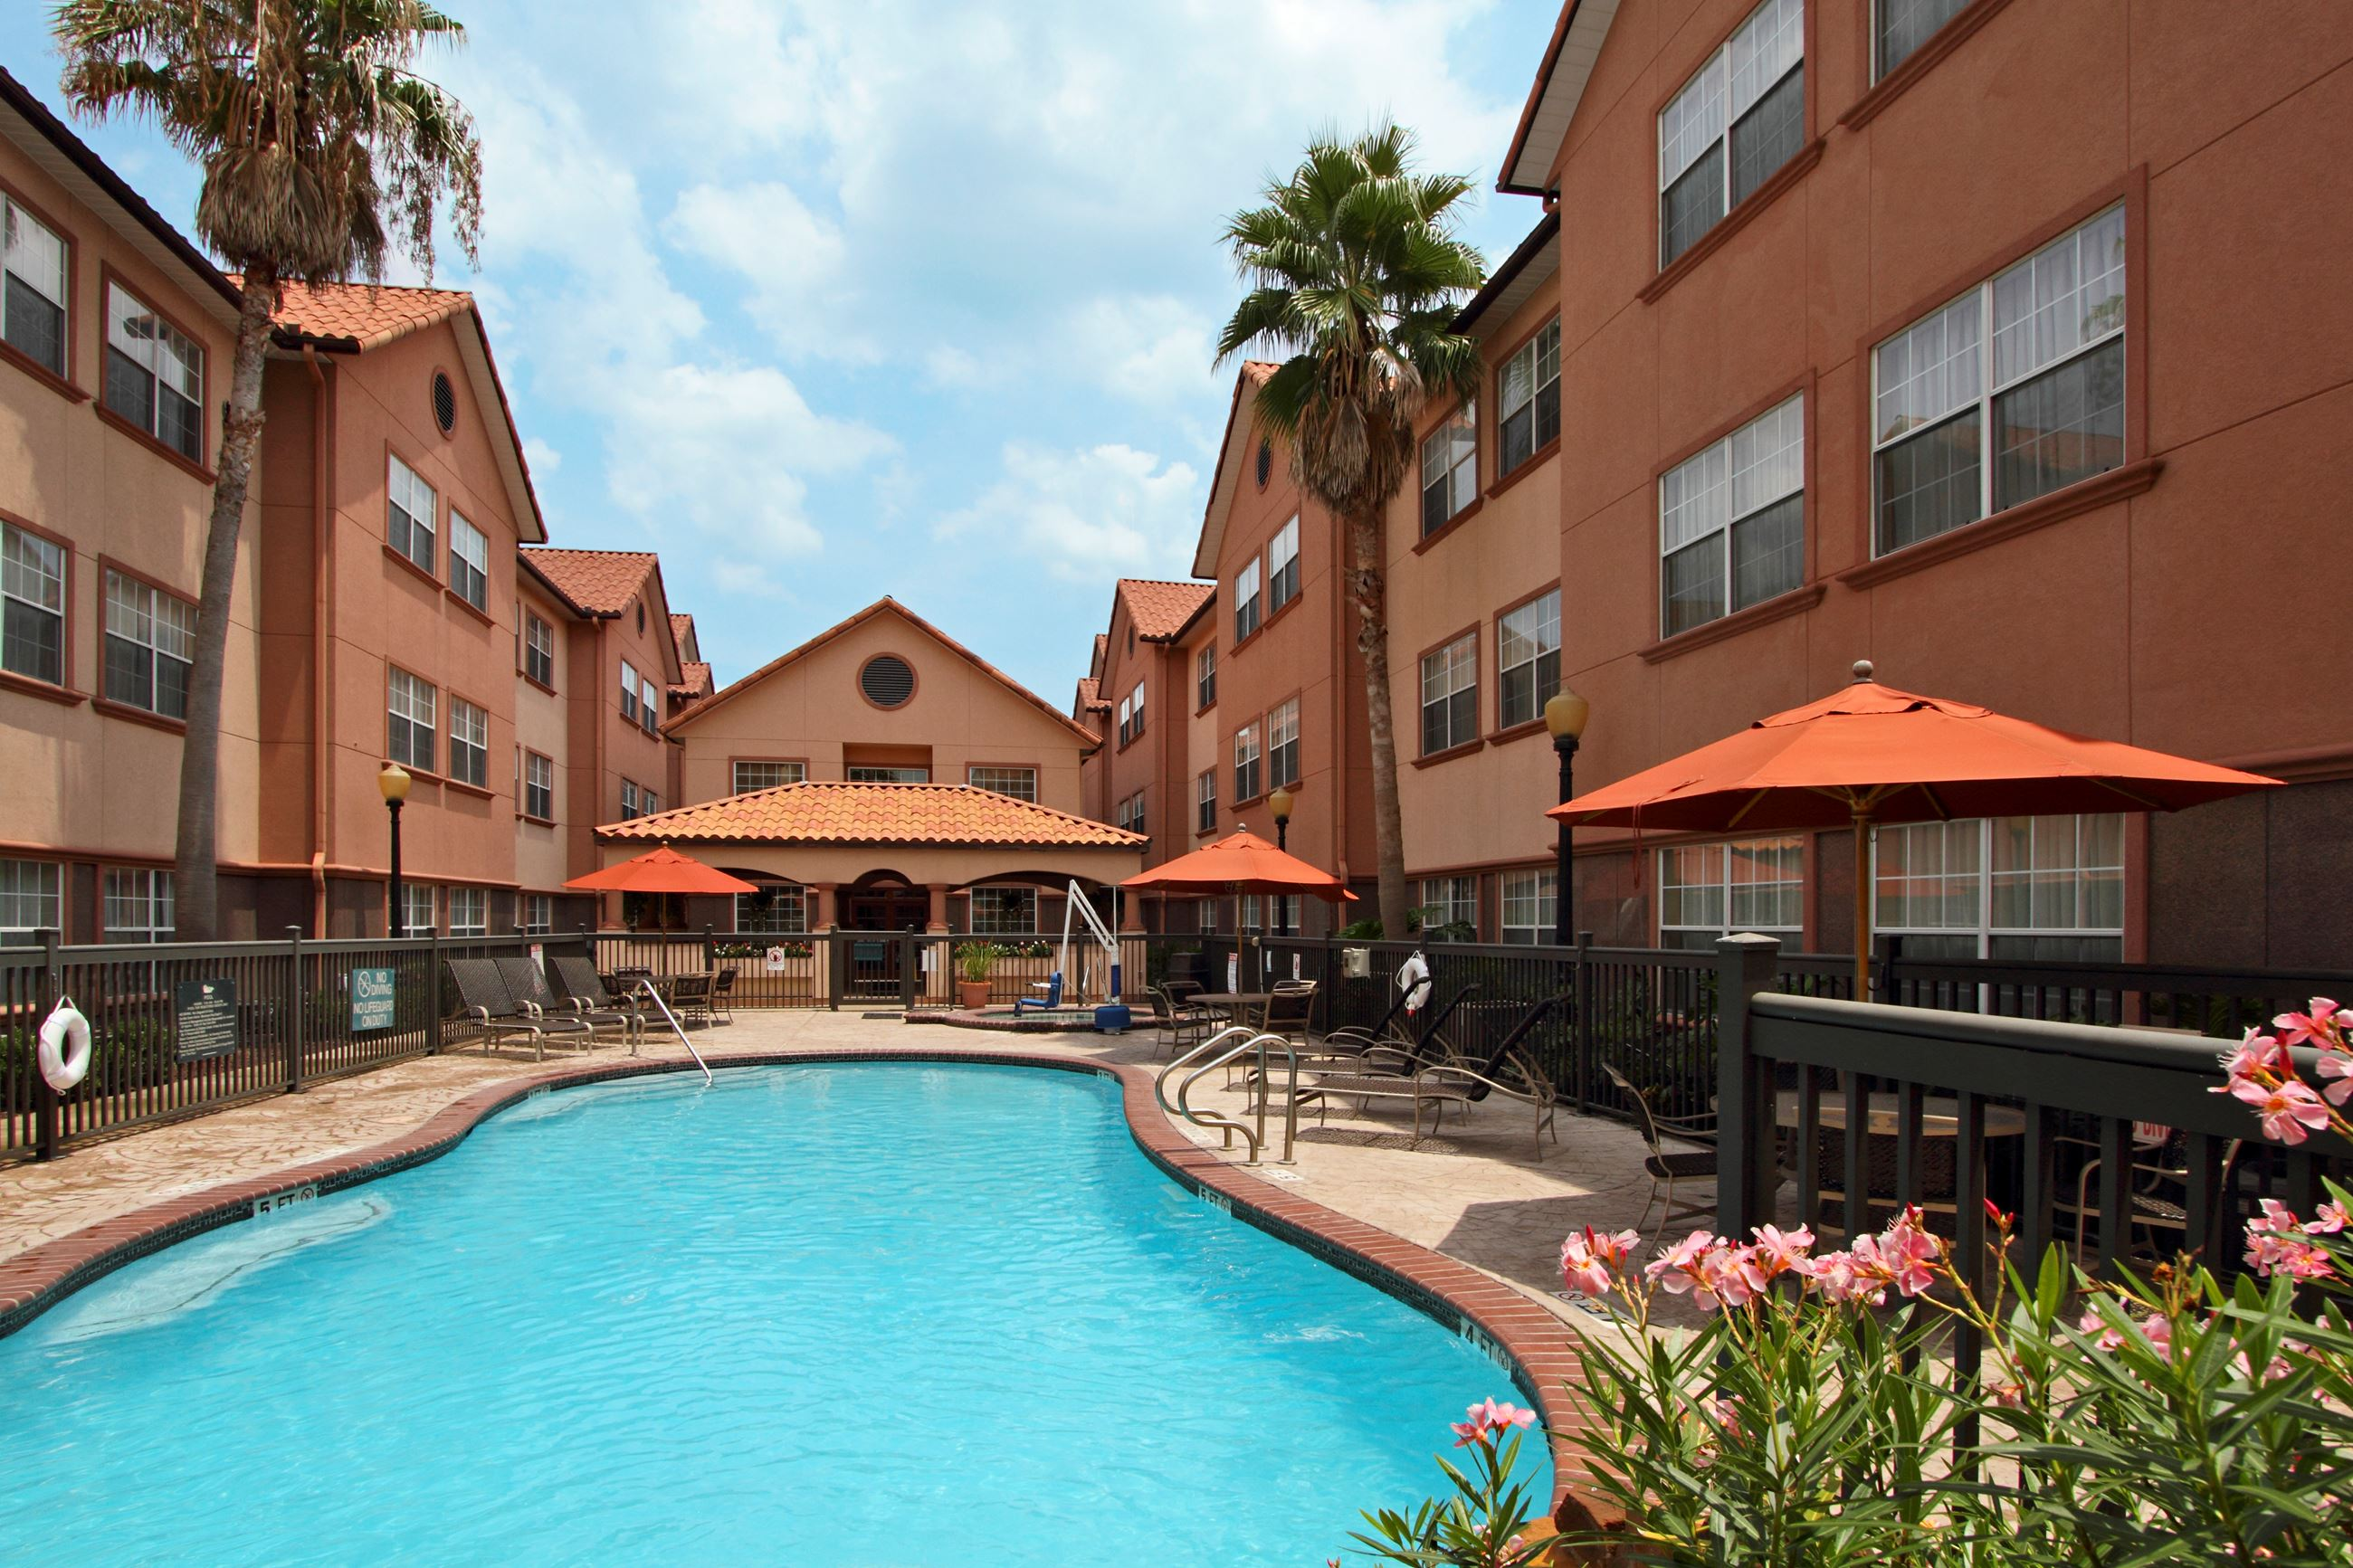 Homewood Suites by Hilton Pool